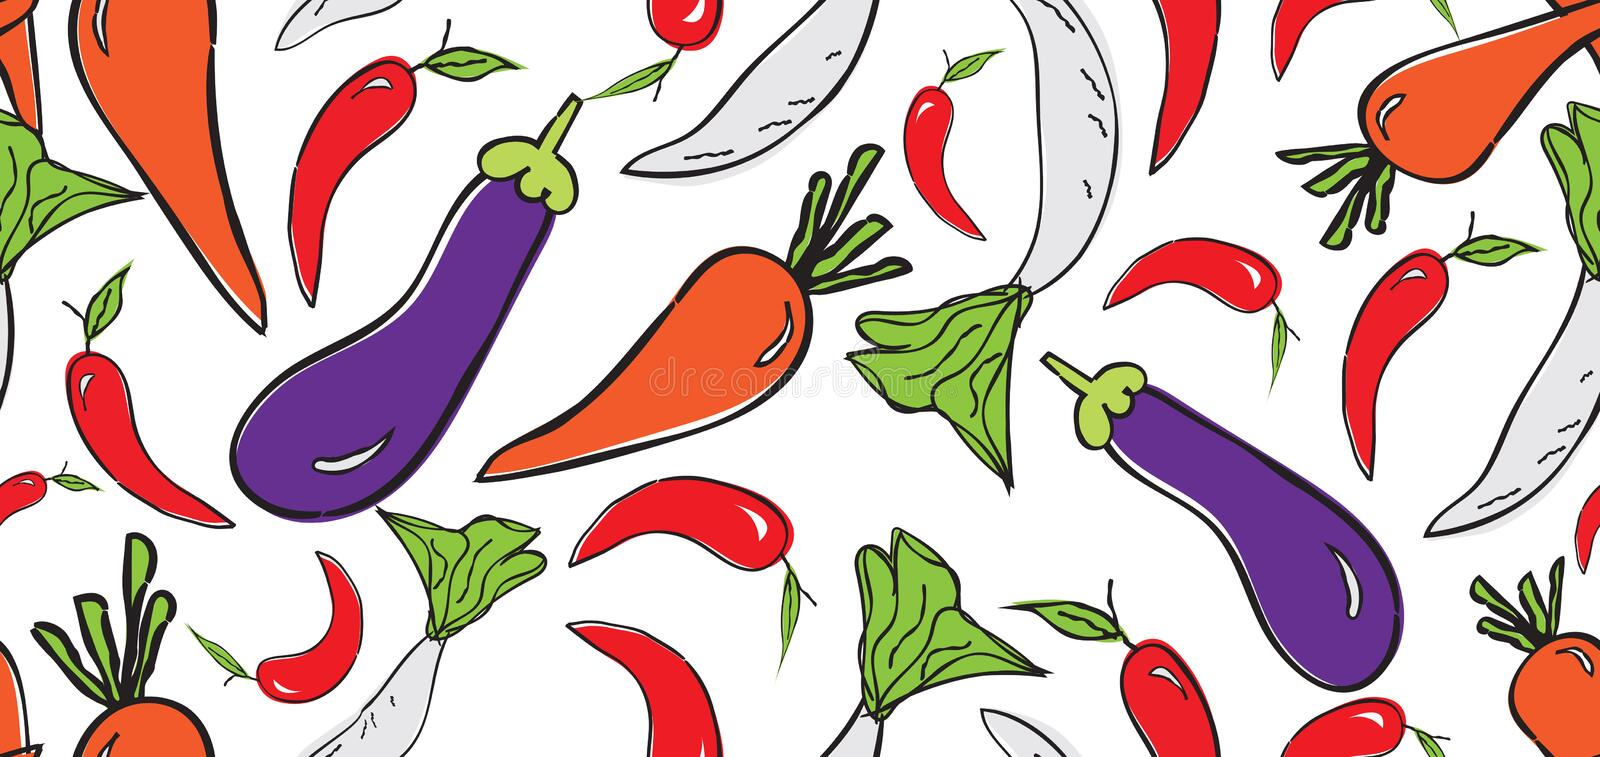 Vegetables seamless pattern, Vegetables banner template vector, web banner, web page, Eggplant, chili pepper, radish, eggplant royalty free stock photography